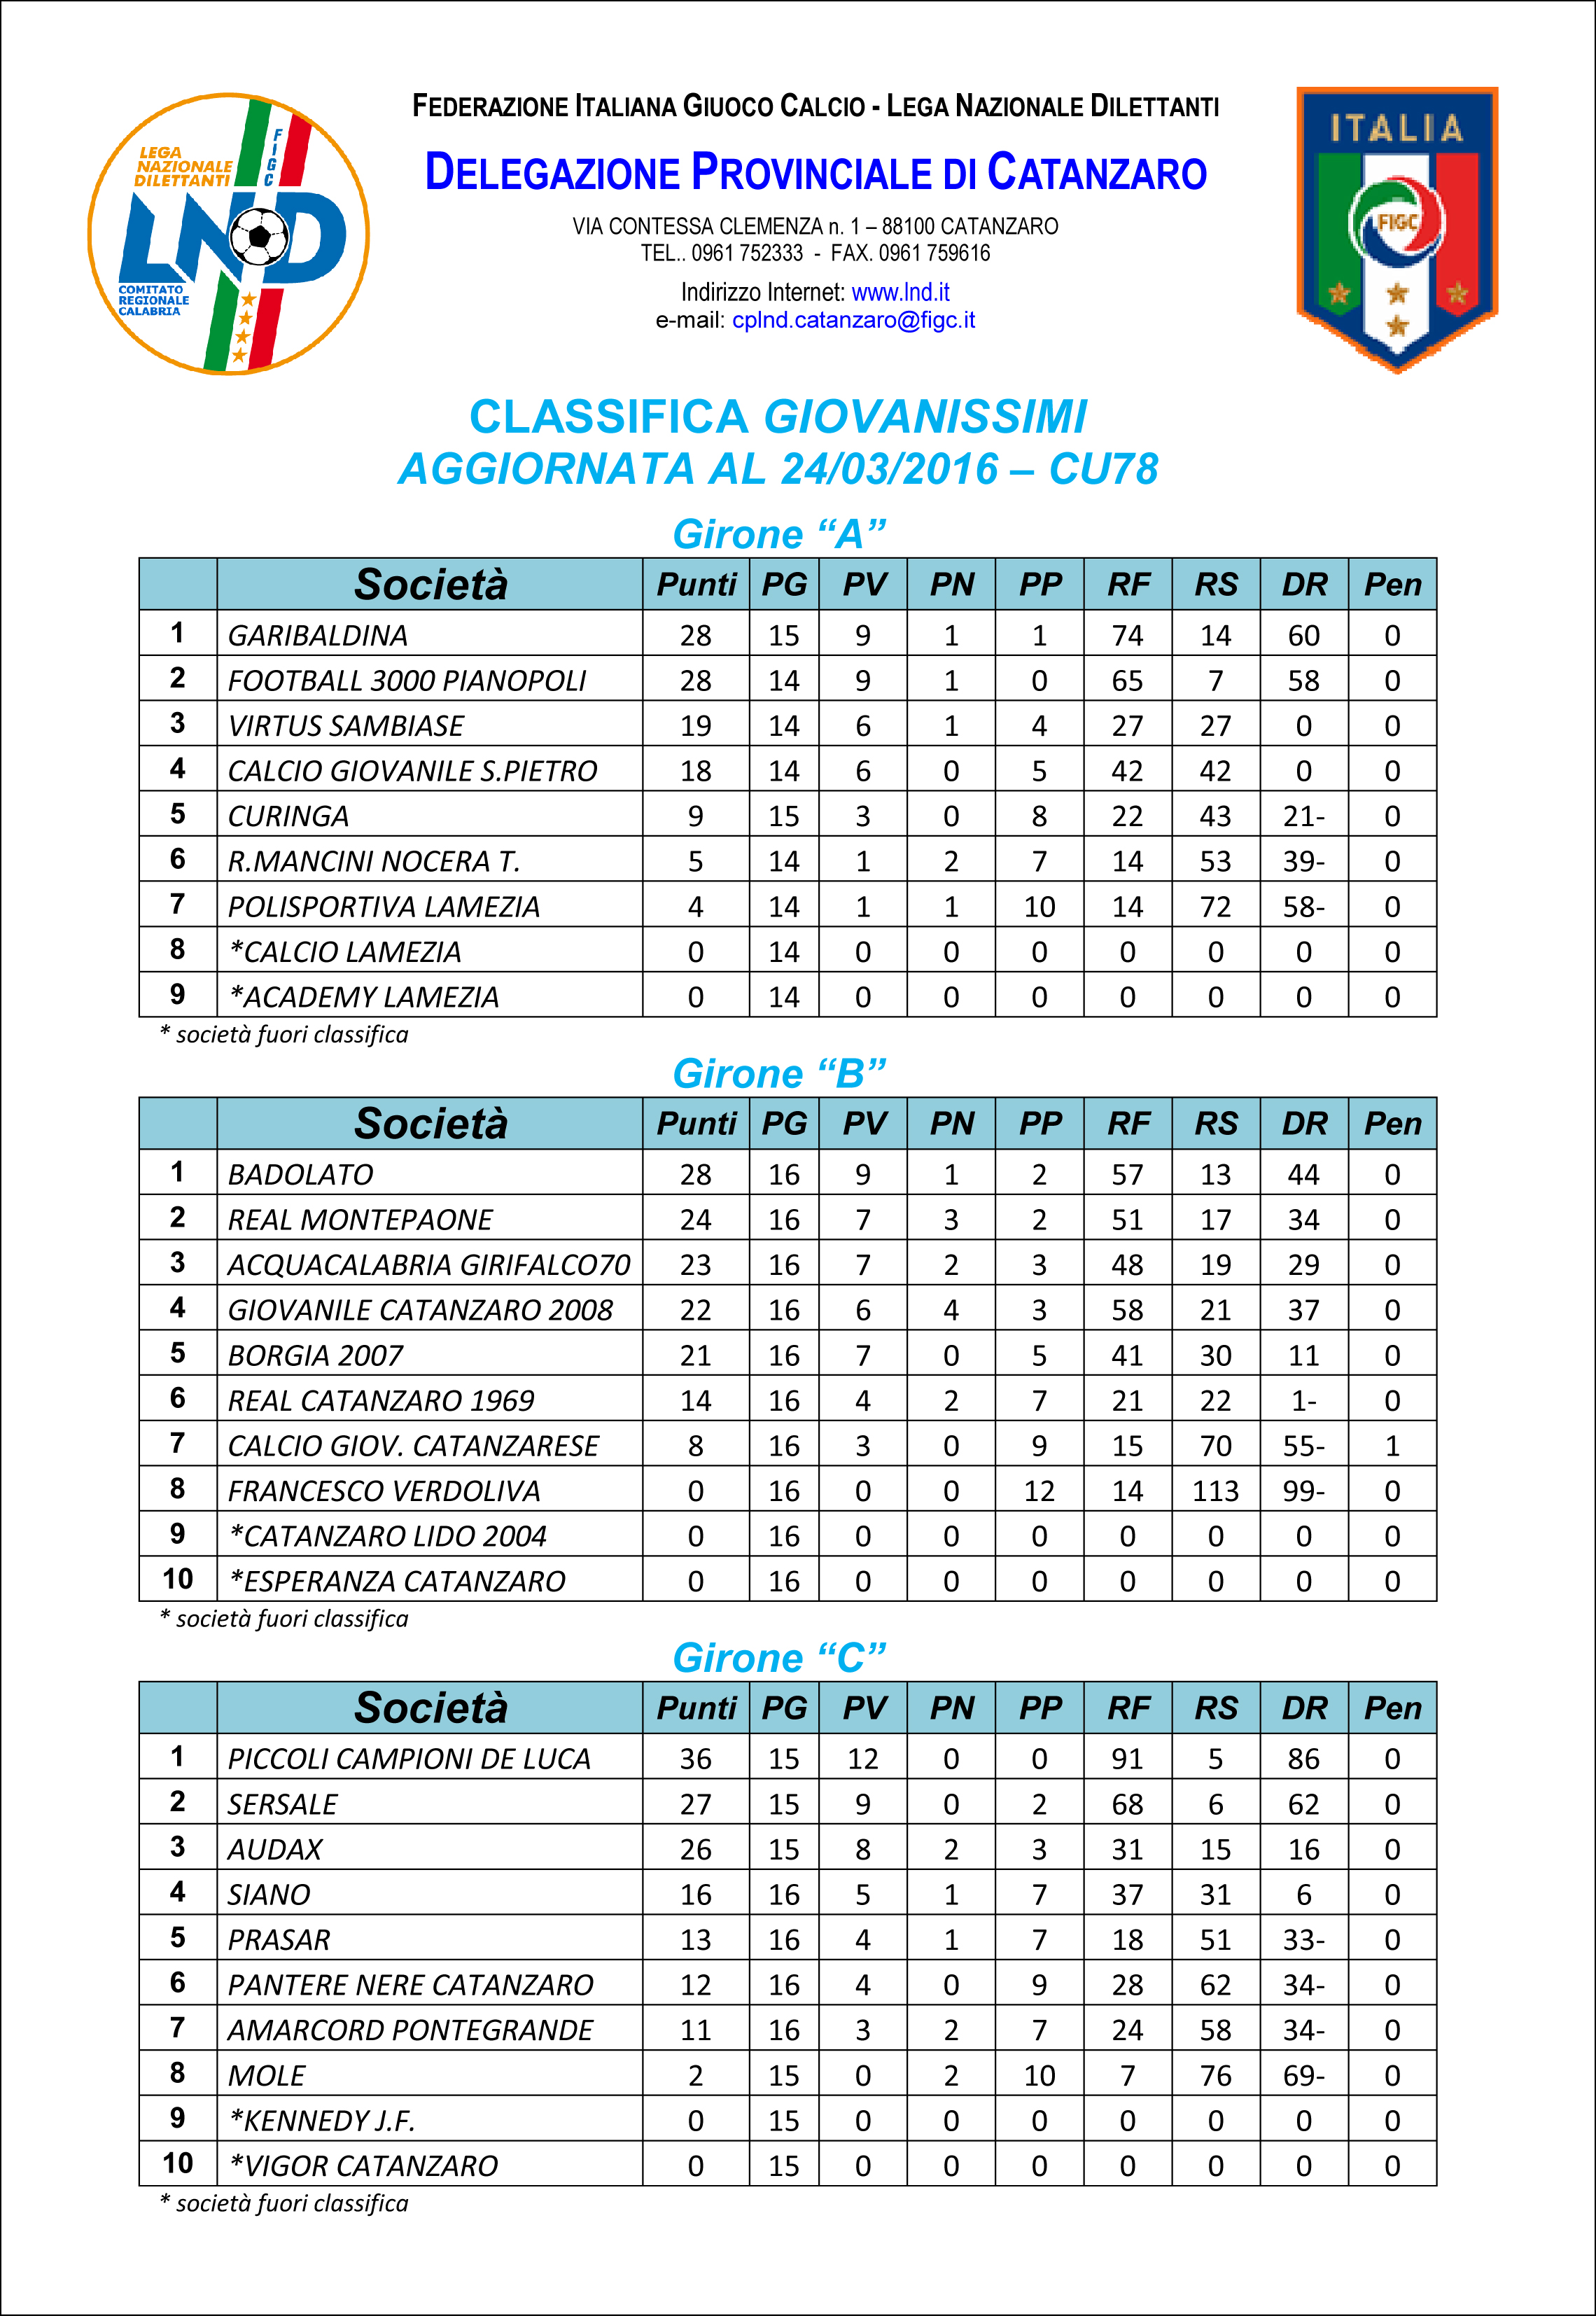 CLASSIFICA CAMPIONATO CALCIO A 11